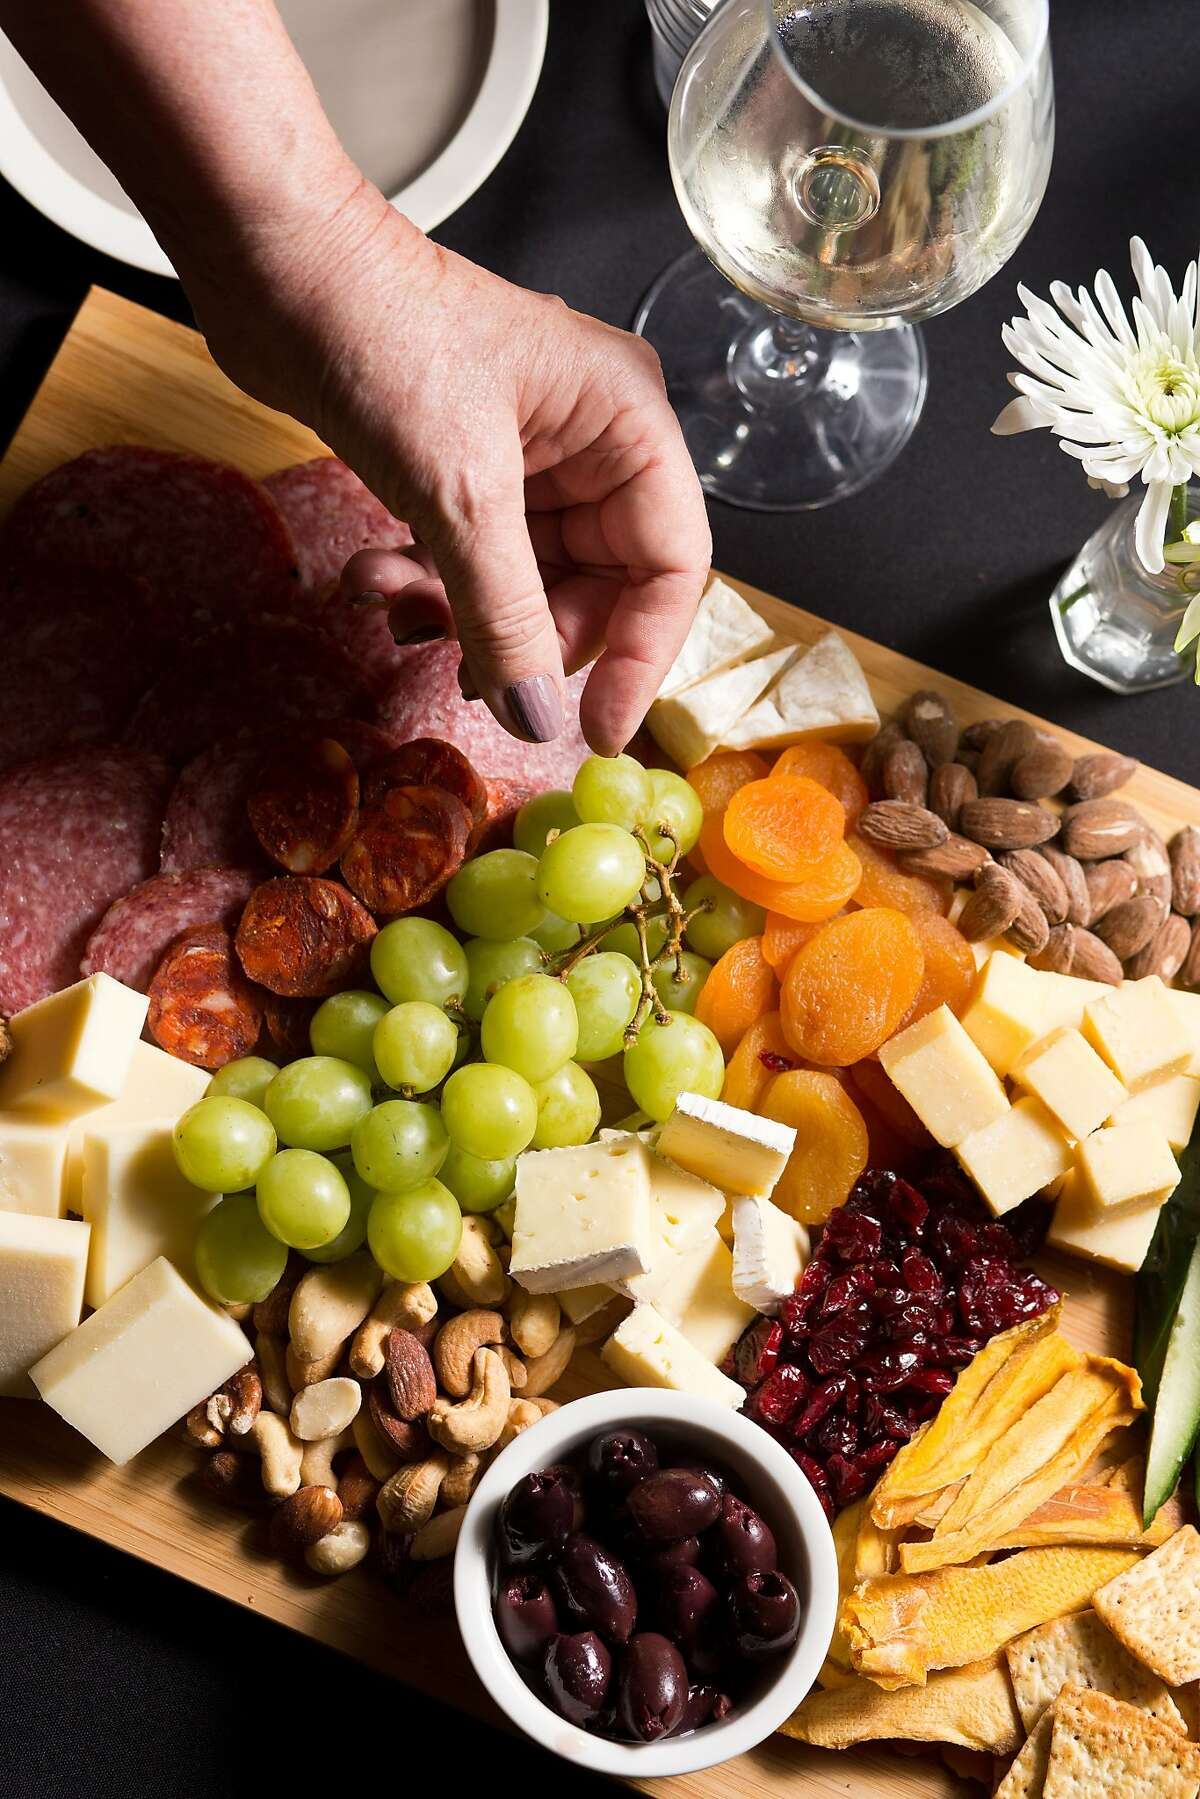 The newly renovated Hotel Sutter offers a restaurant, bar and basement bar called The Cellar with live music in Sutter Creek, Calif., Thursday, January 30, 2014. Here a large farm house cheese plate with salami fruit and nuts for sharing.